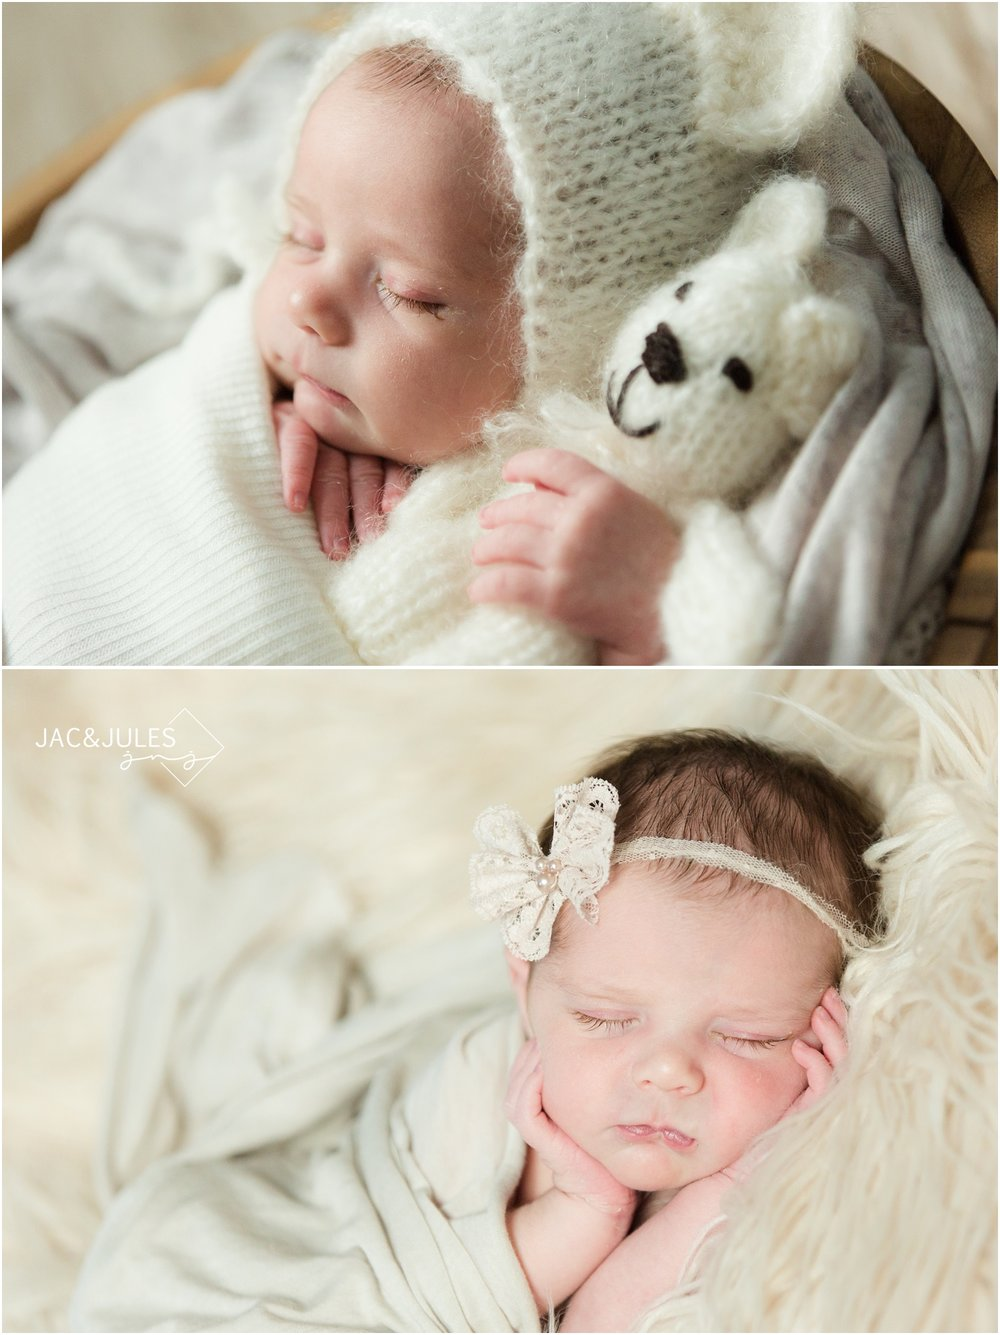 simple newborn photos of beautiful baby girl in toms river, nj.